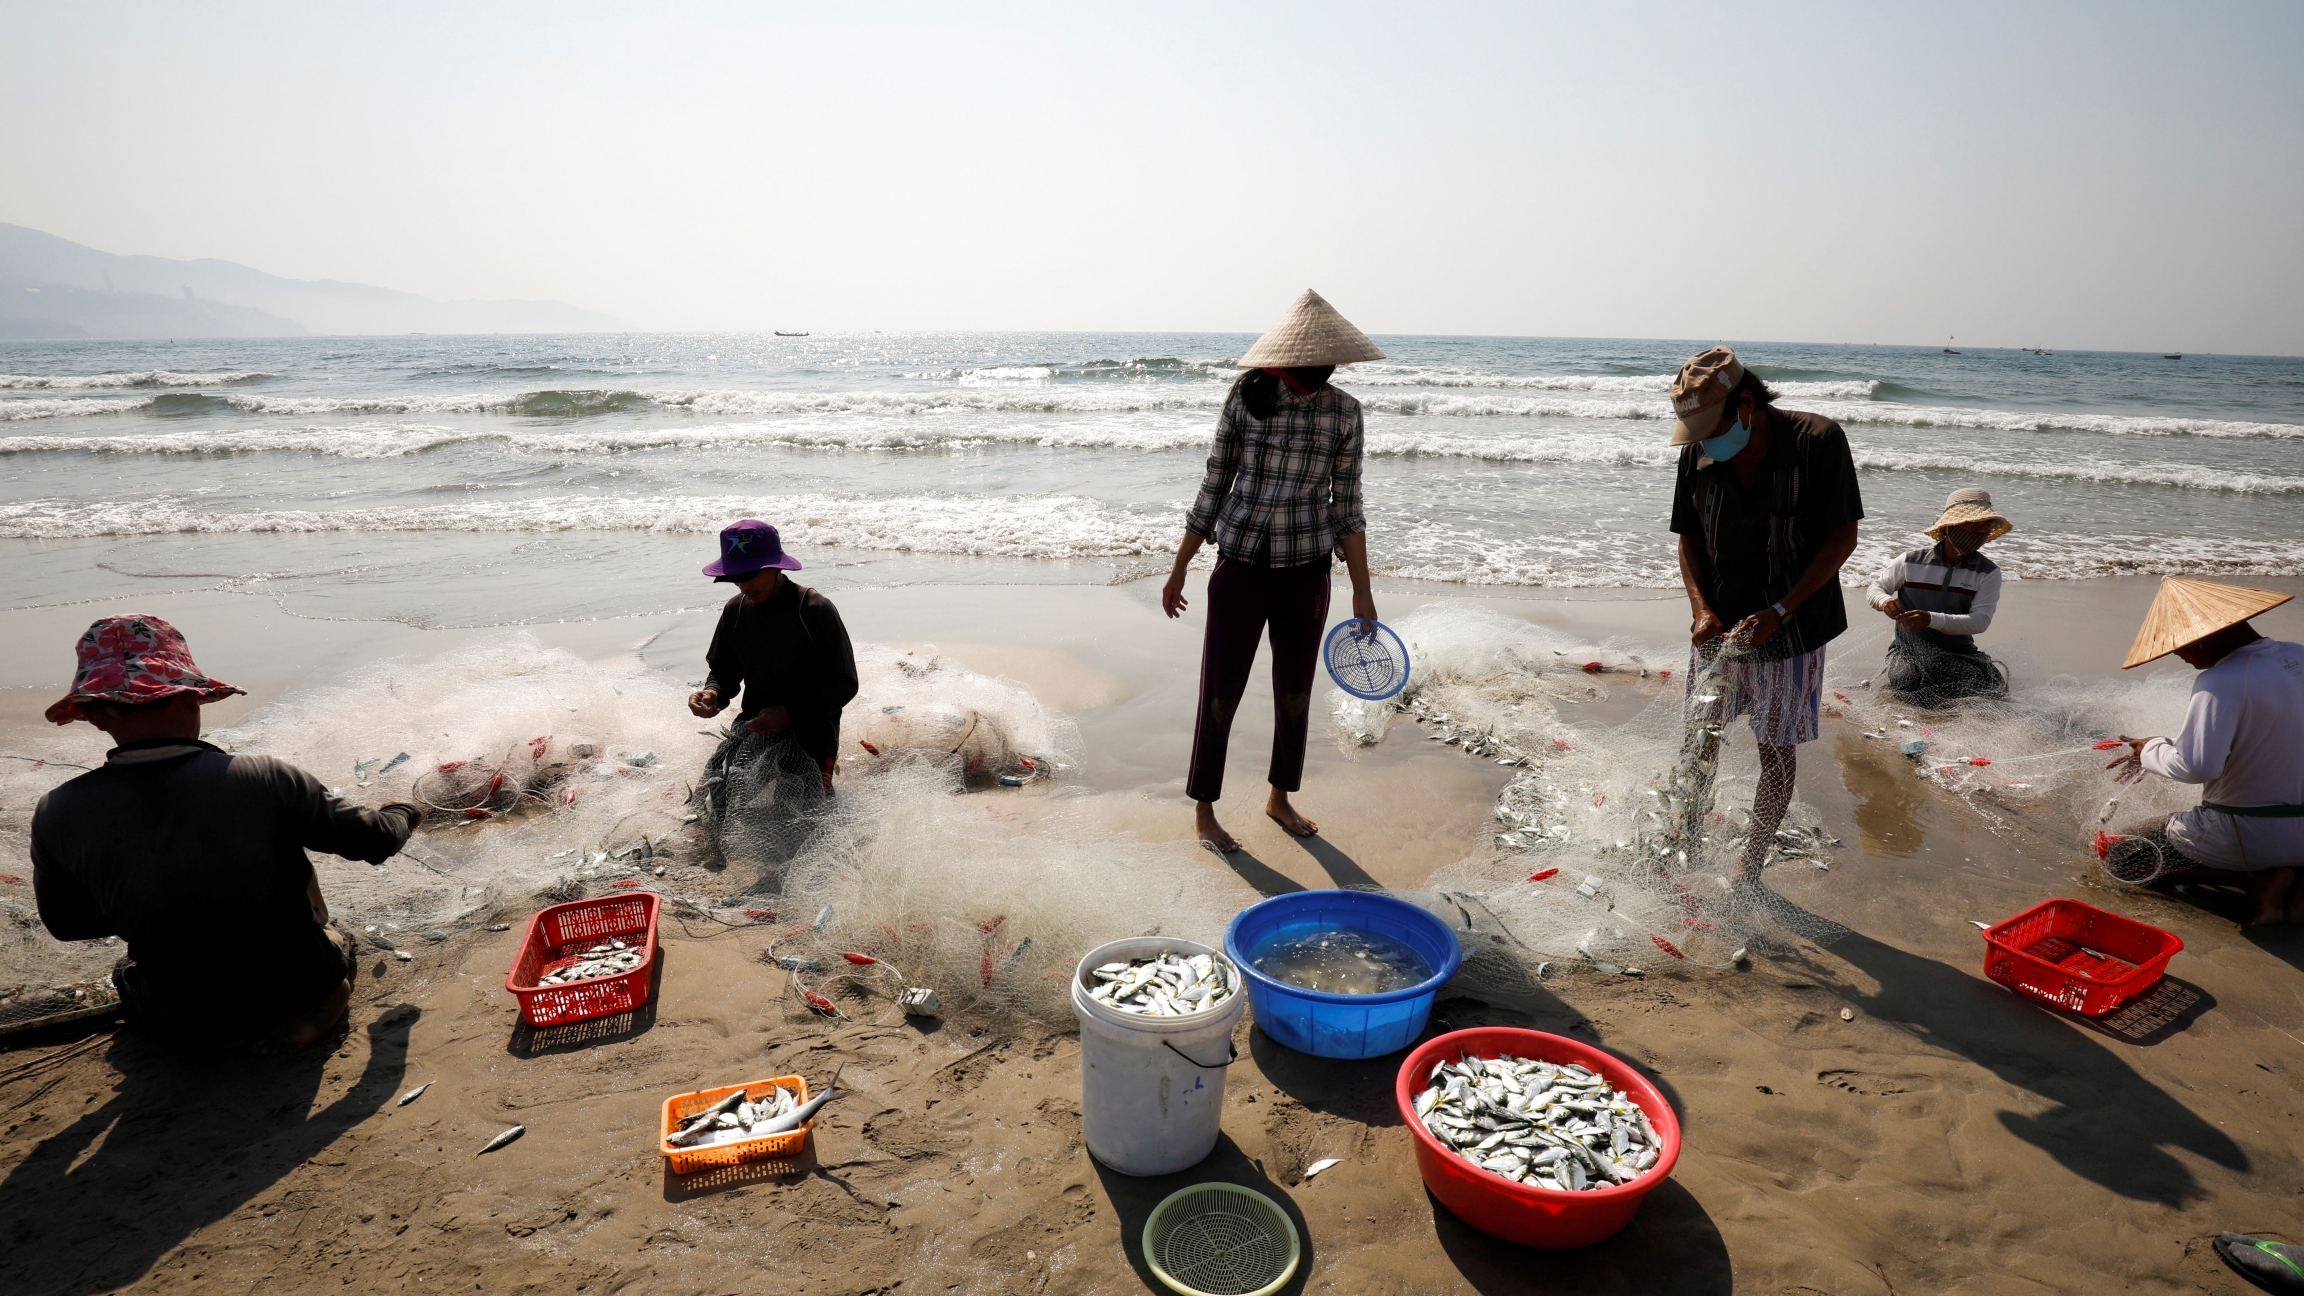 People wearing protective masks collect fishes on a beach during the coronavirus disease (COVID-19) outbreak in Da Nang city, Vietnam, May 6, 2020.